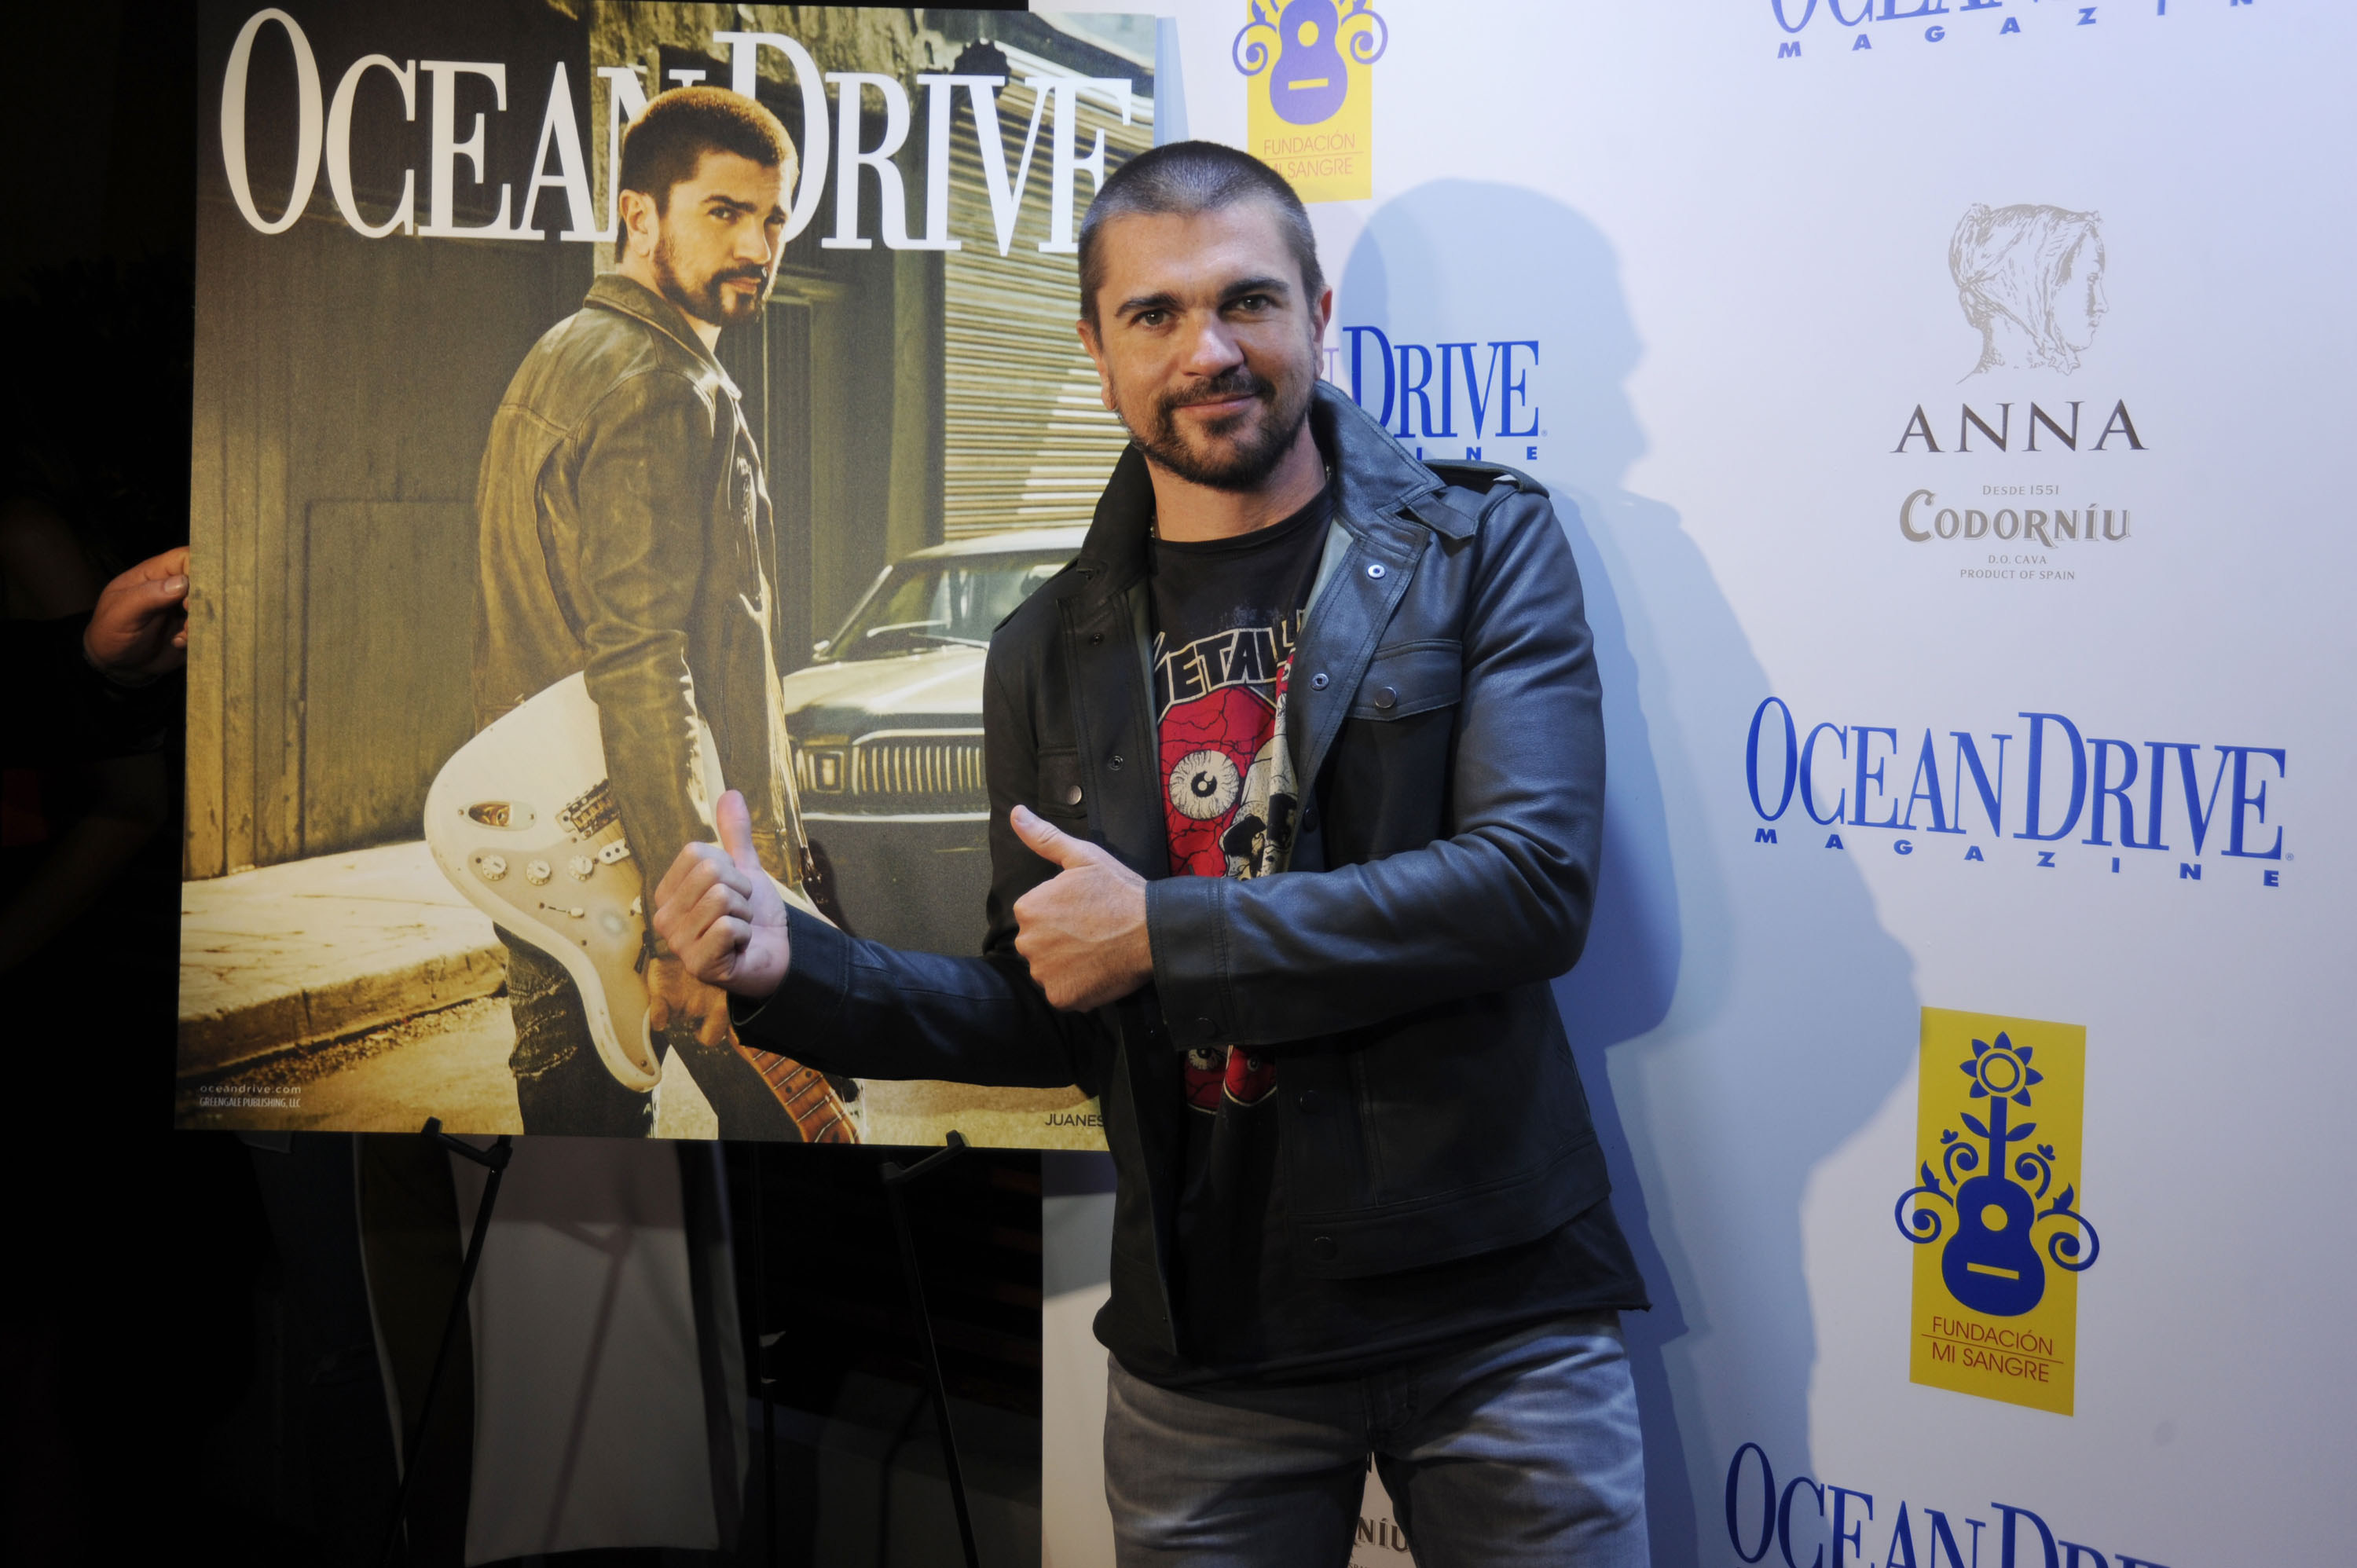 Juanes Celebrated Ocean Drive Magazine Cover Last Night at French 27